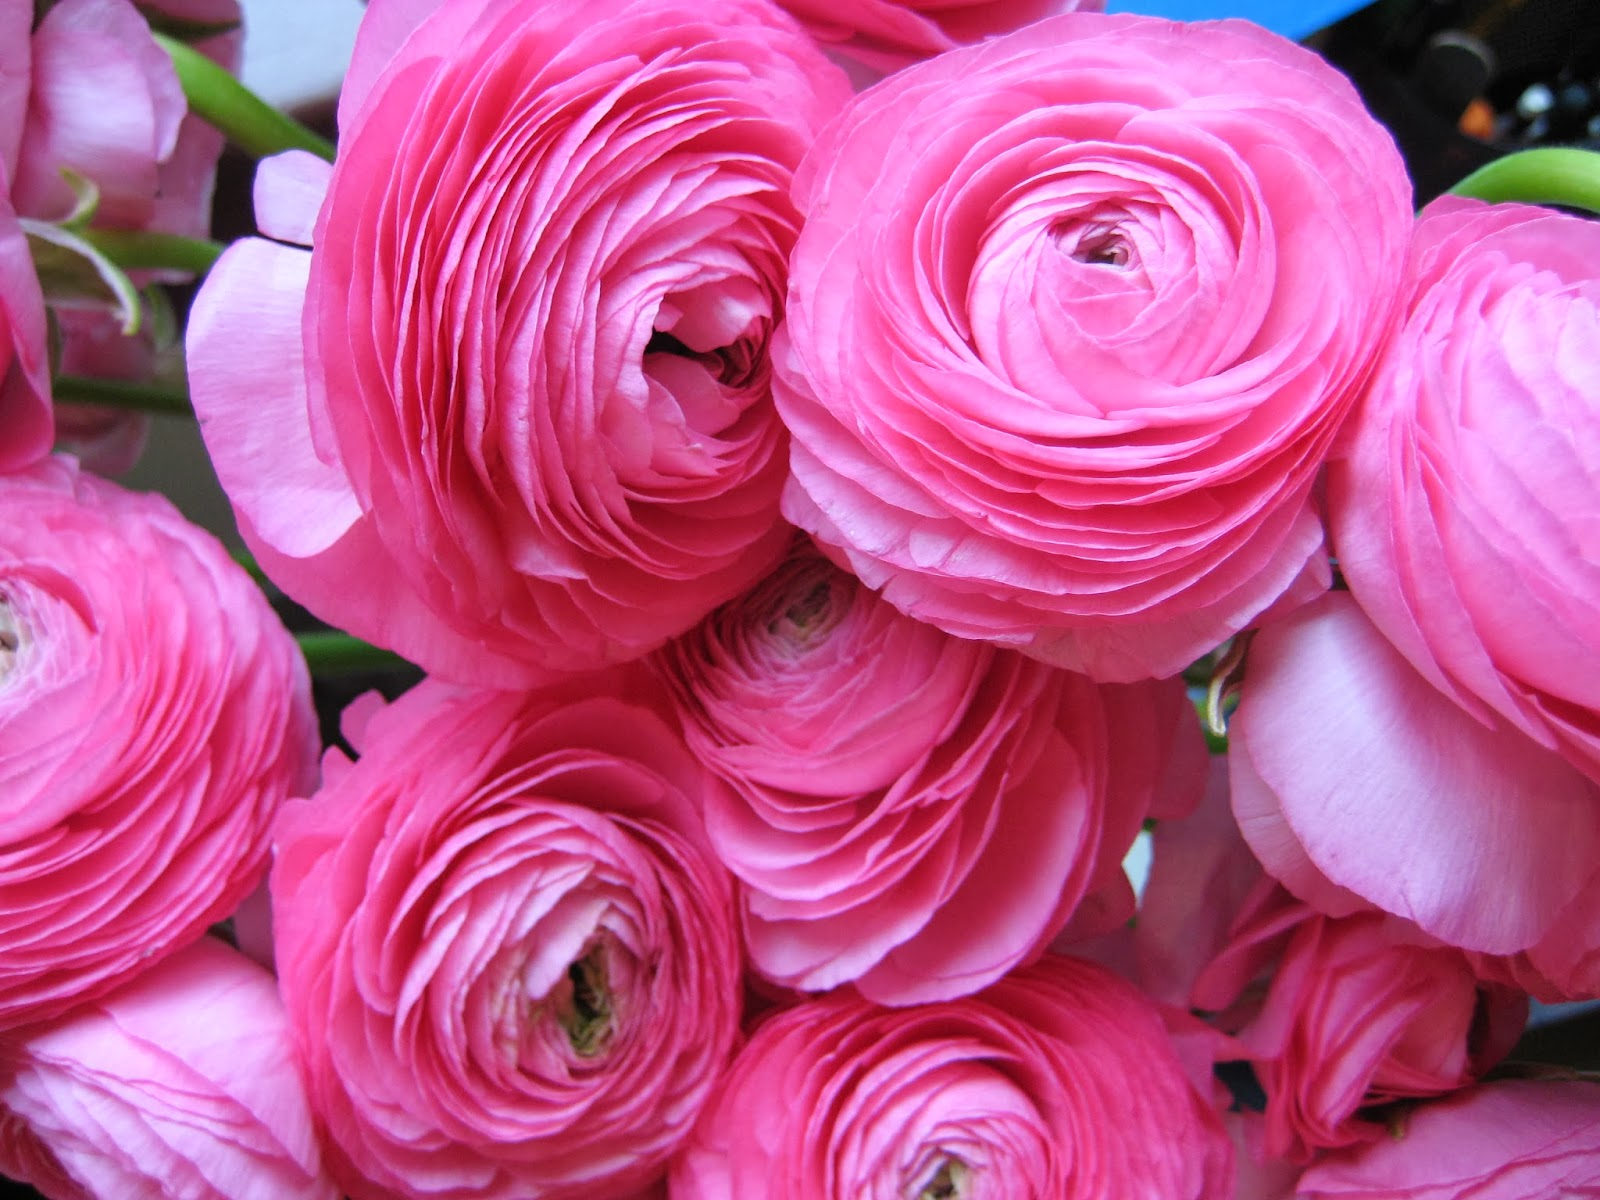 Romantic Flowers: Ranunculus flowers